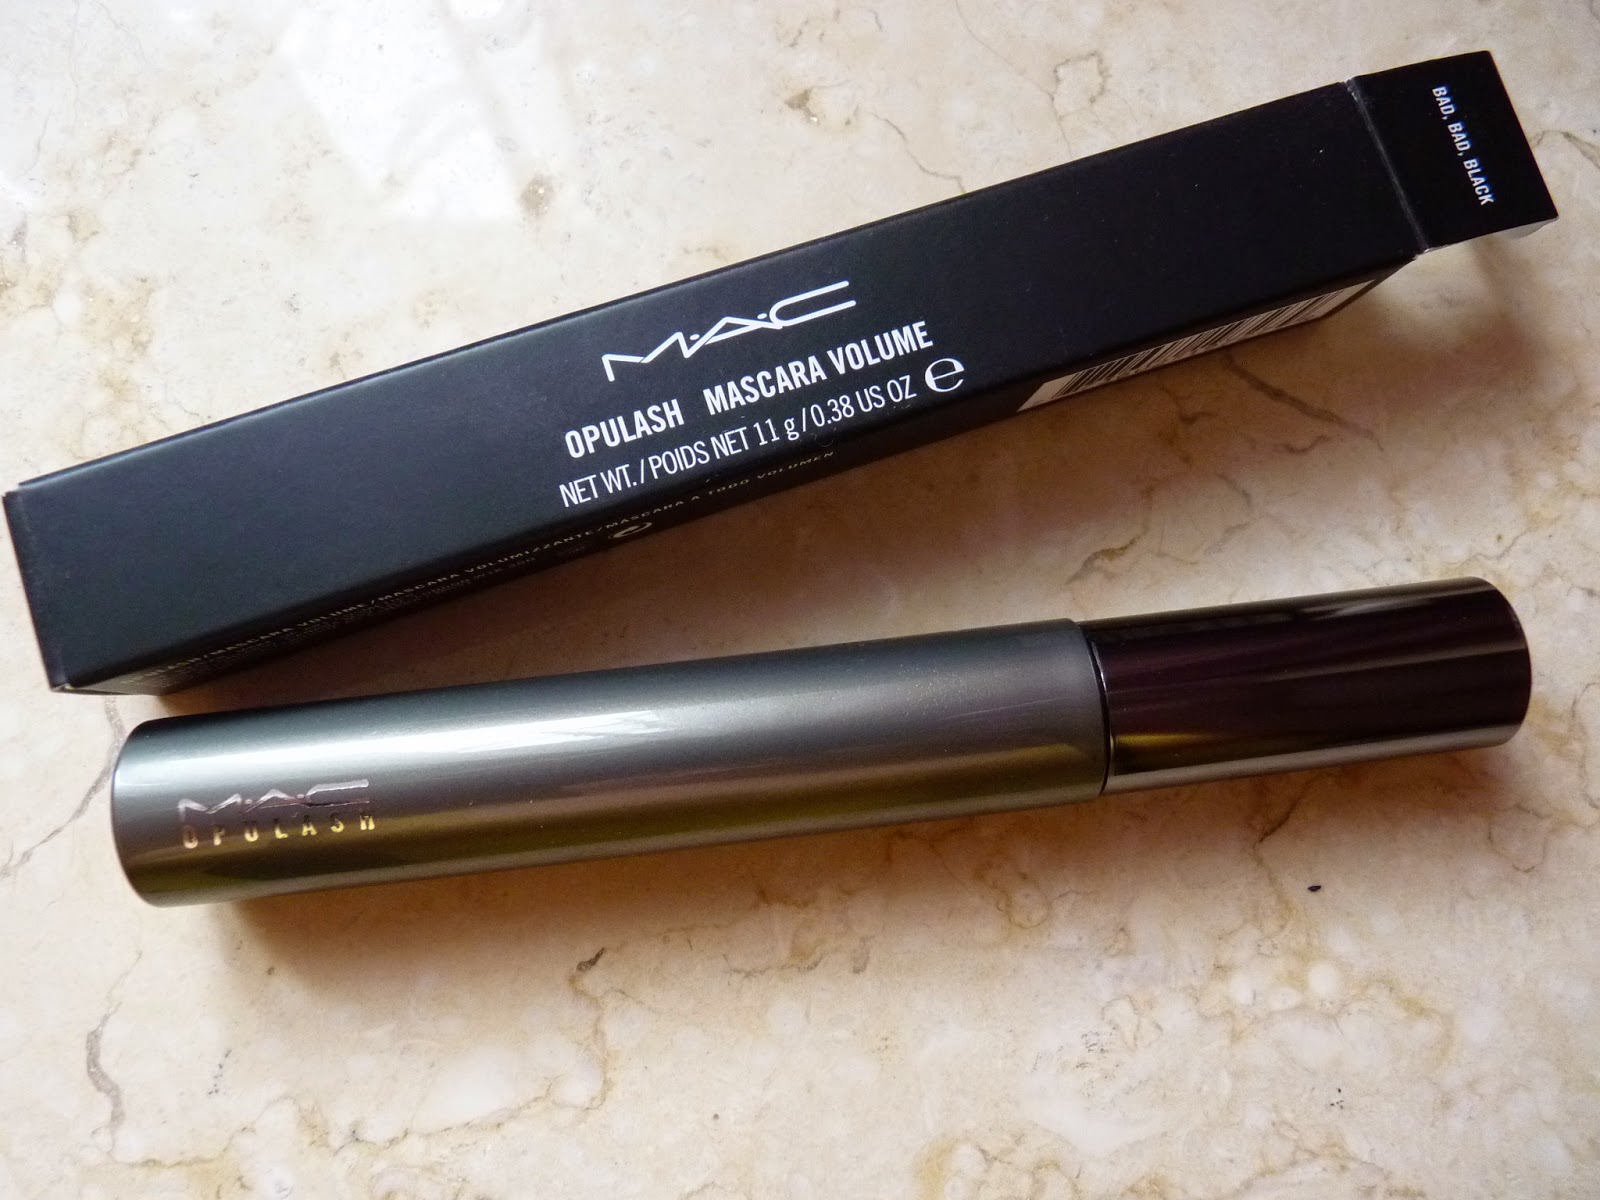 MAC Opulash Mascara